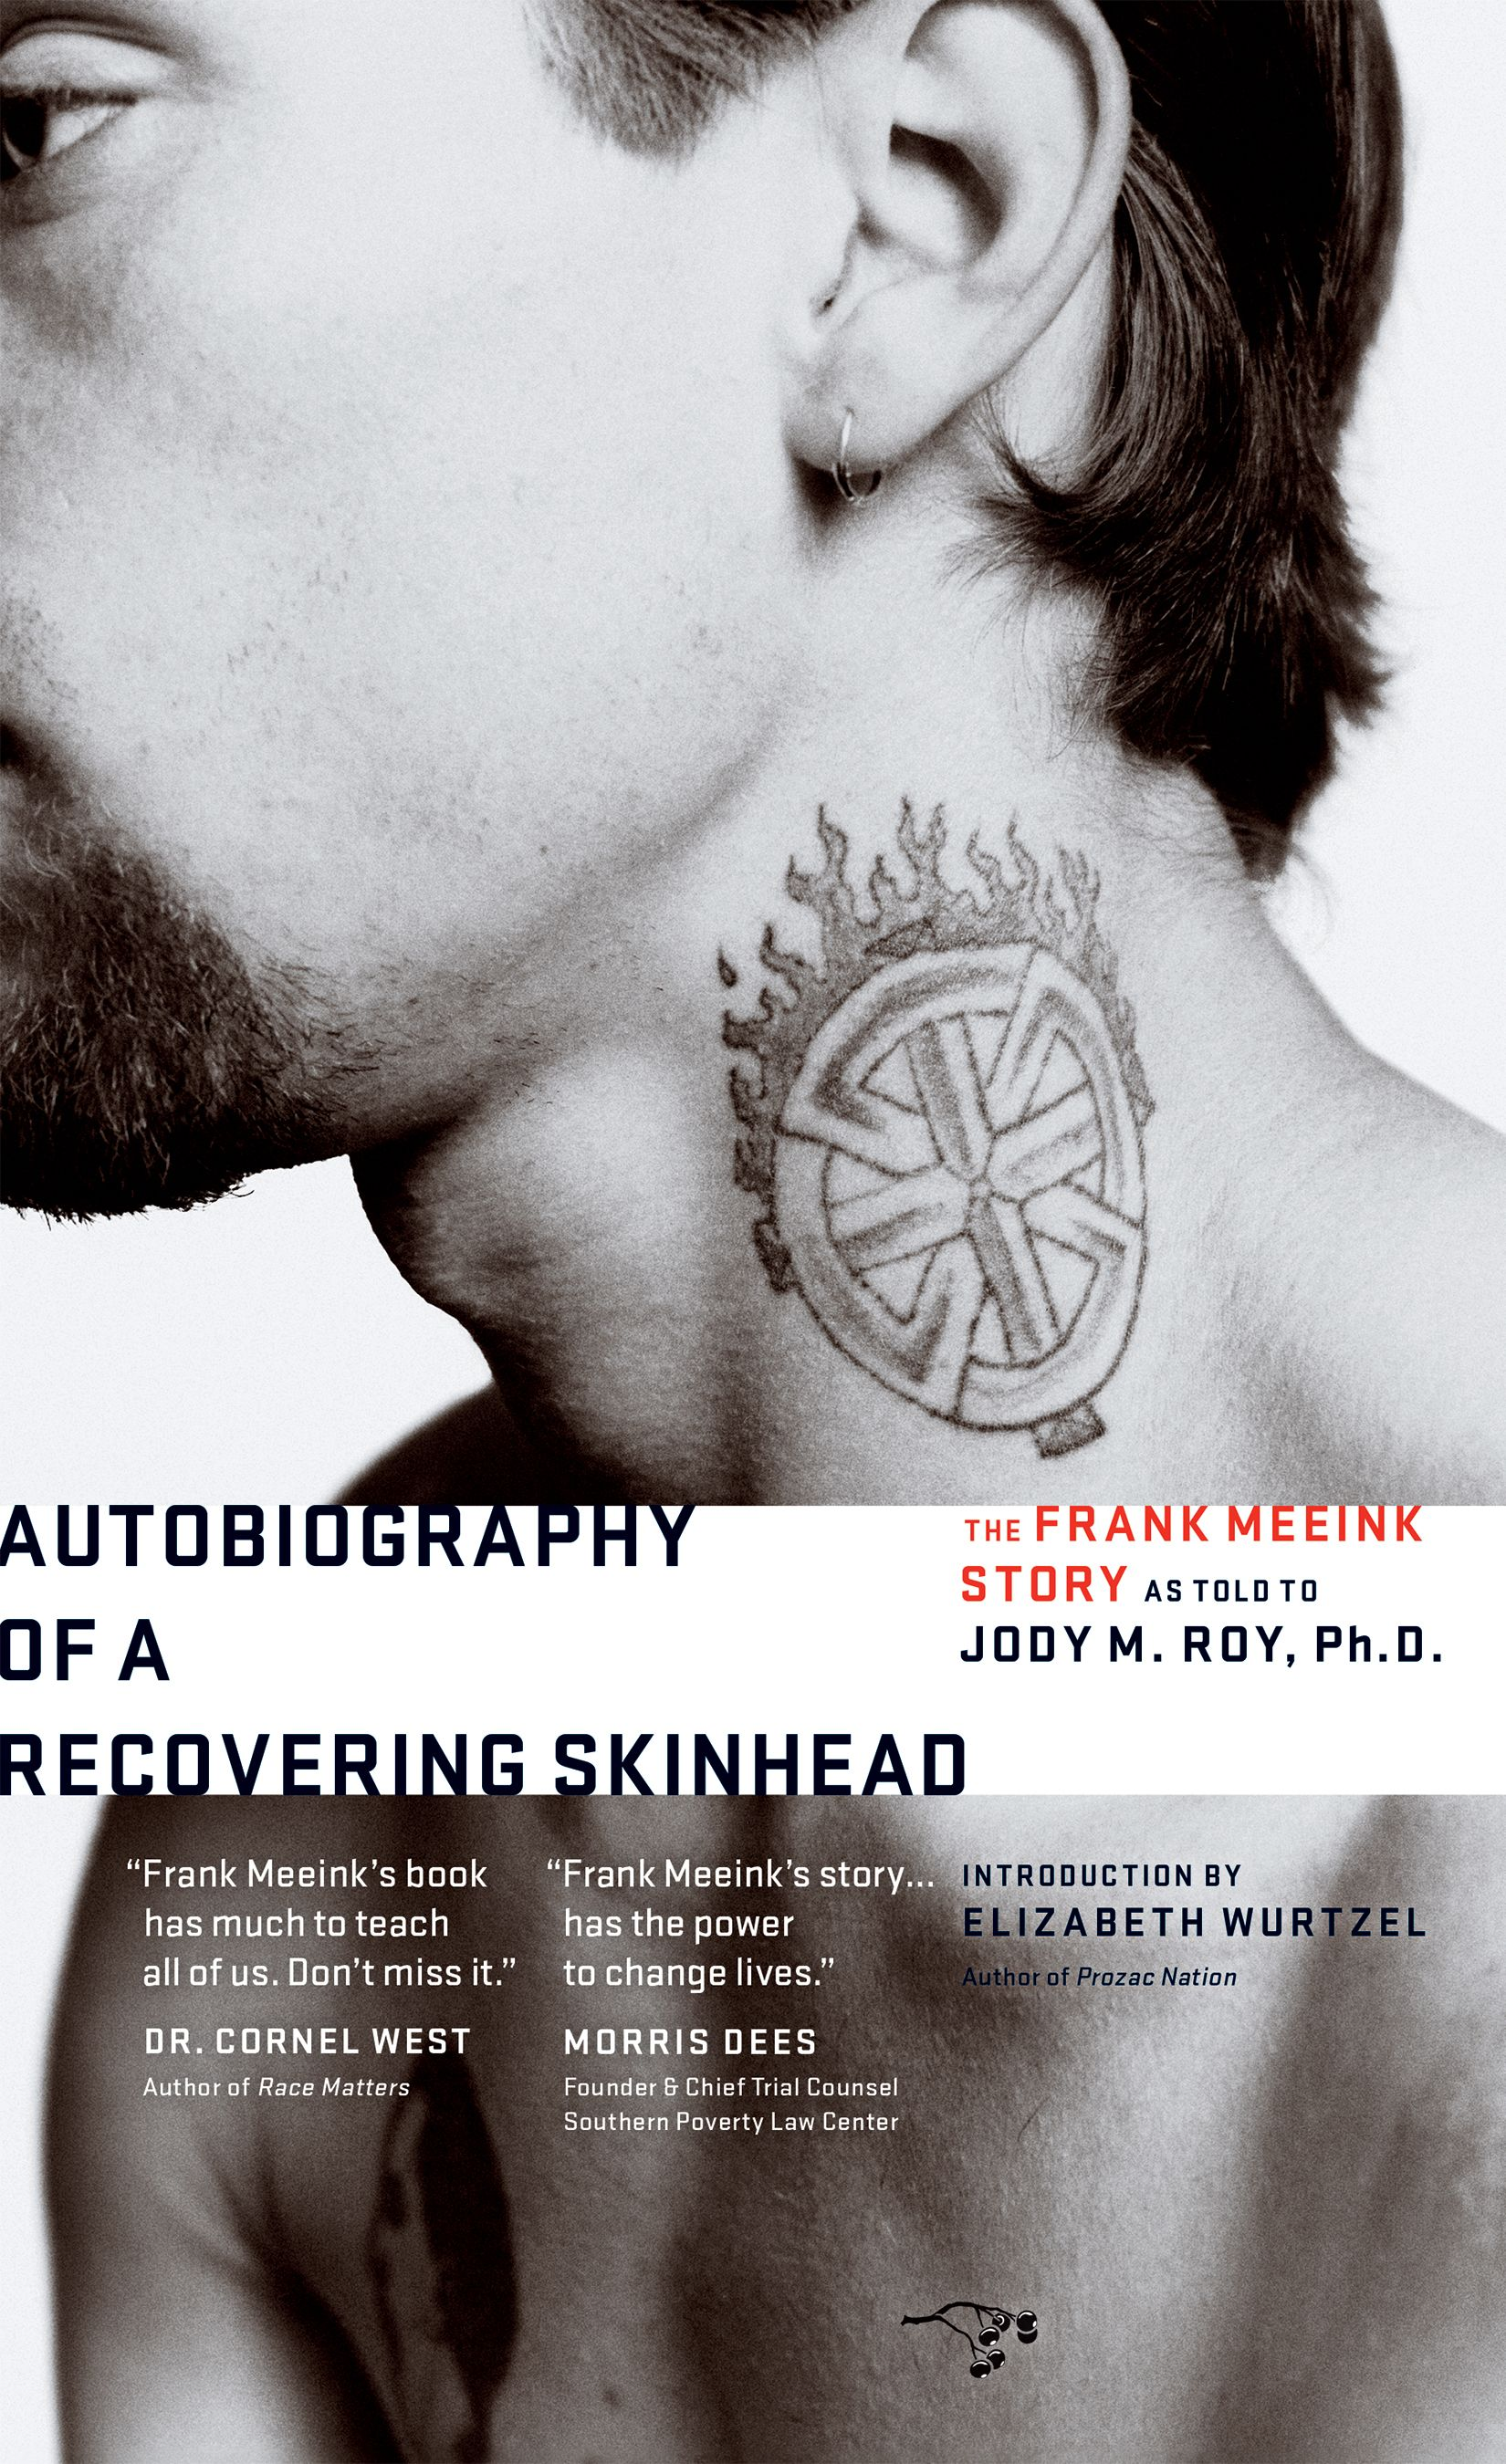 Autobiography of a Recovering Skinhead, 2nd edition